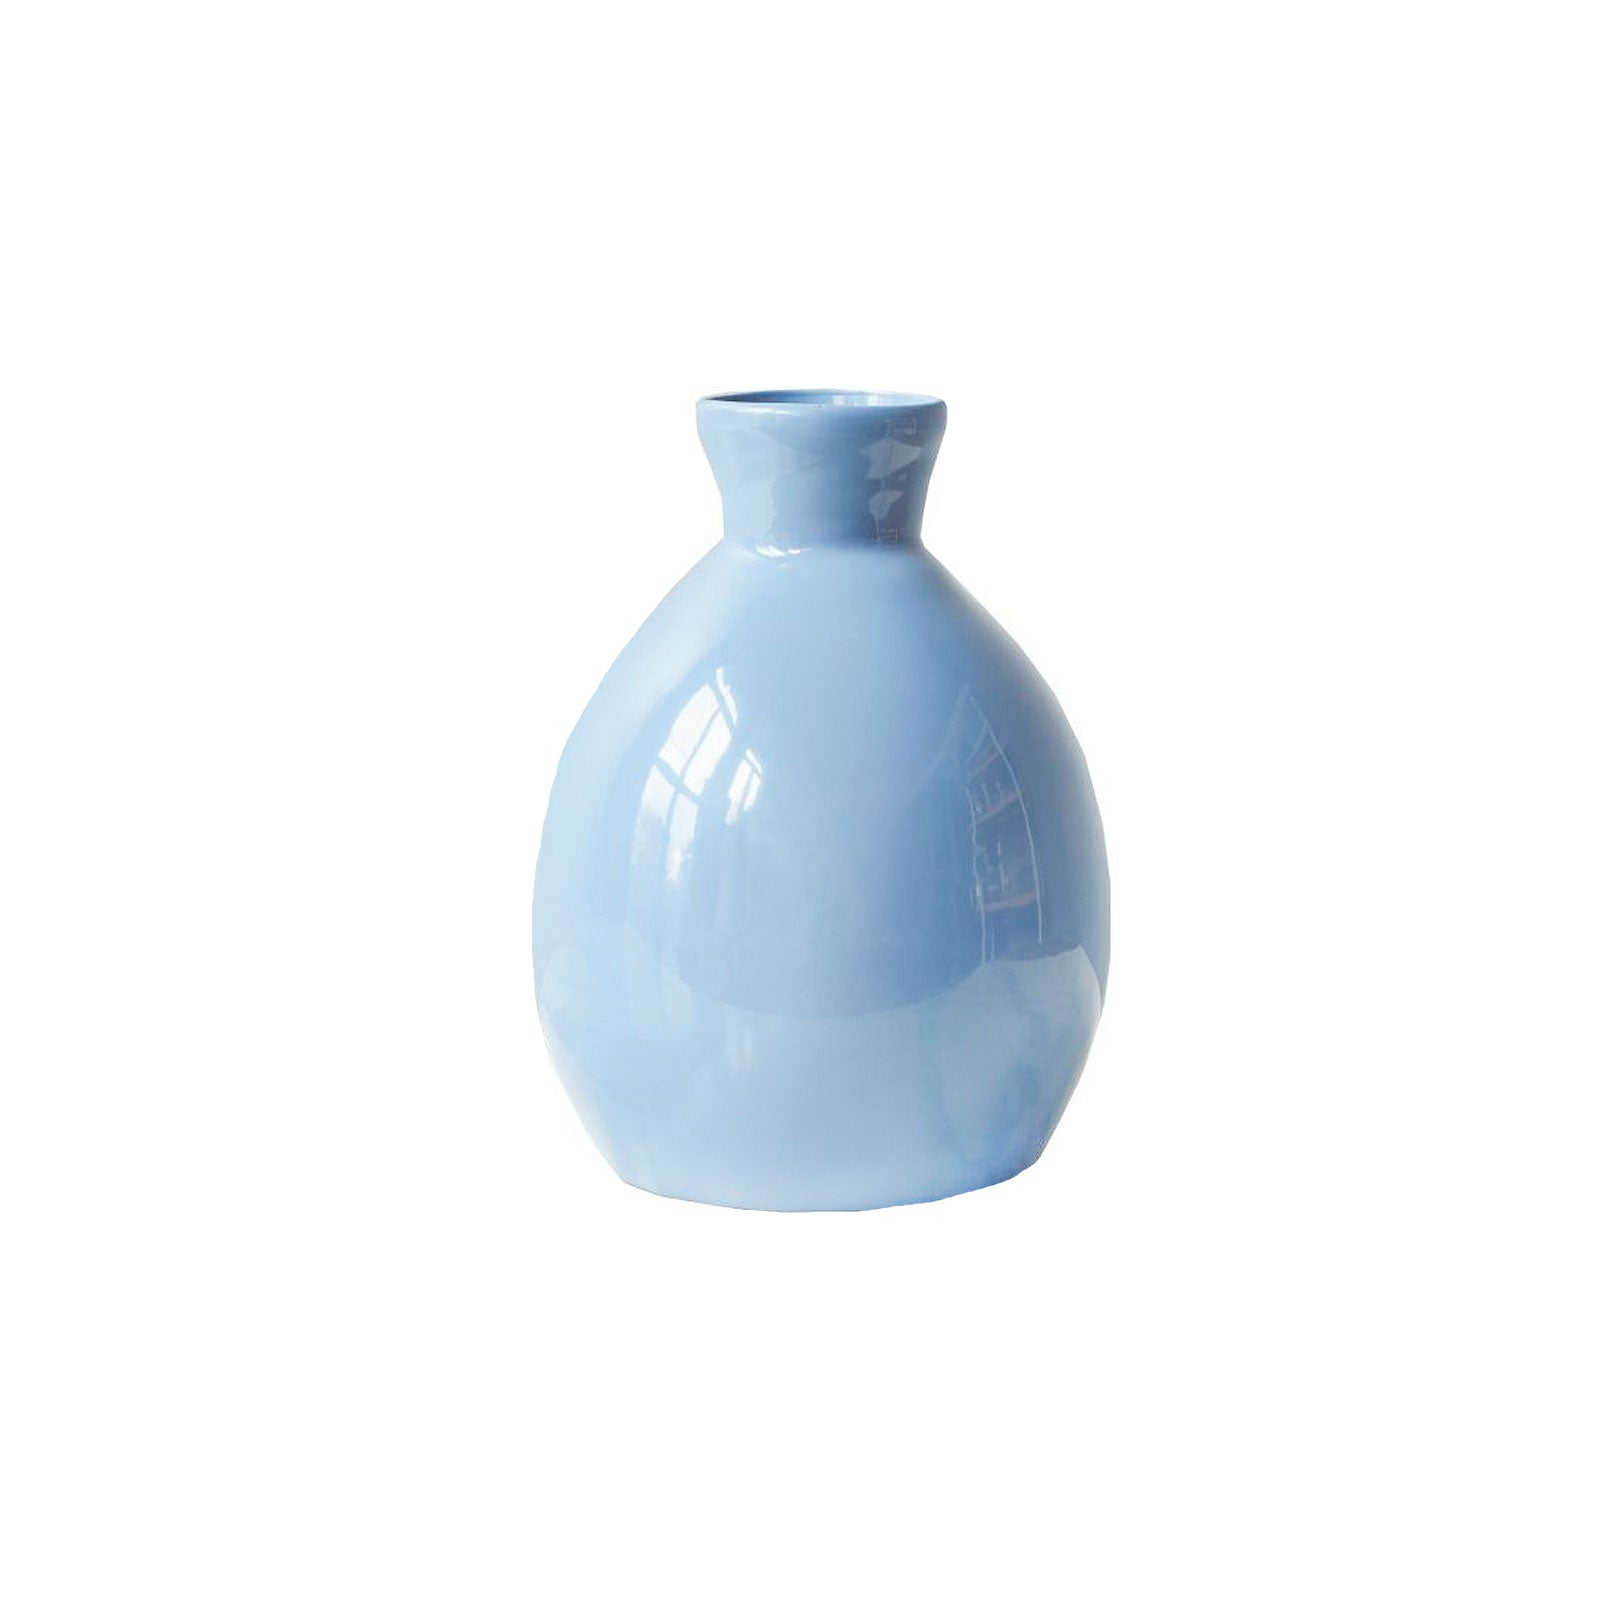 Small Handmade French Blue Vase